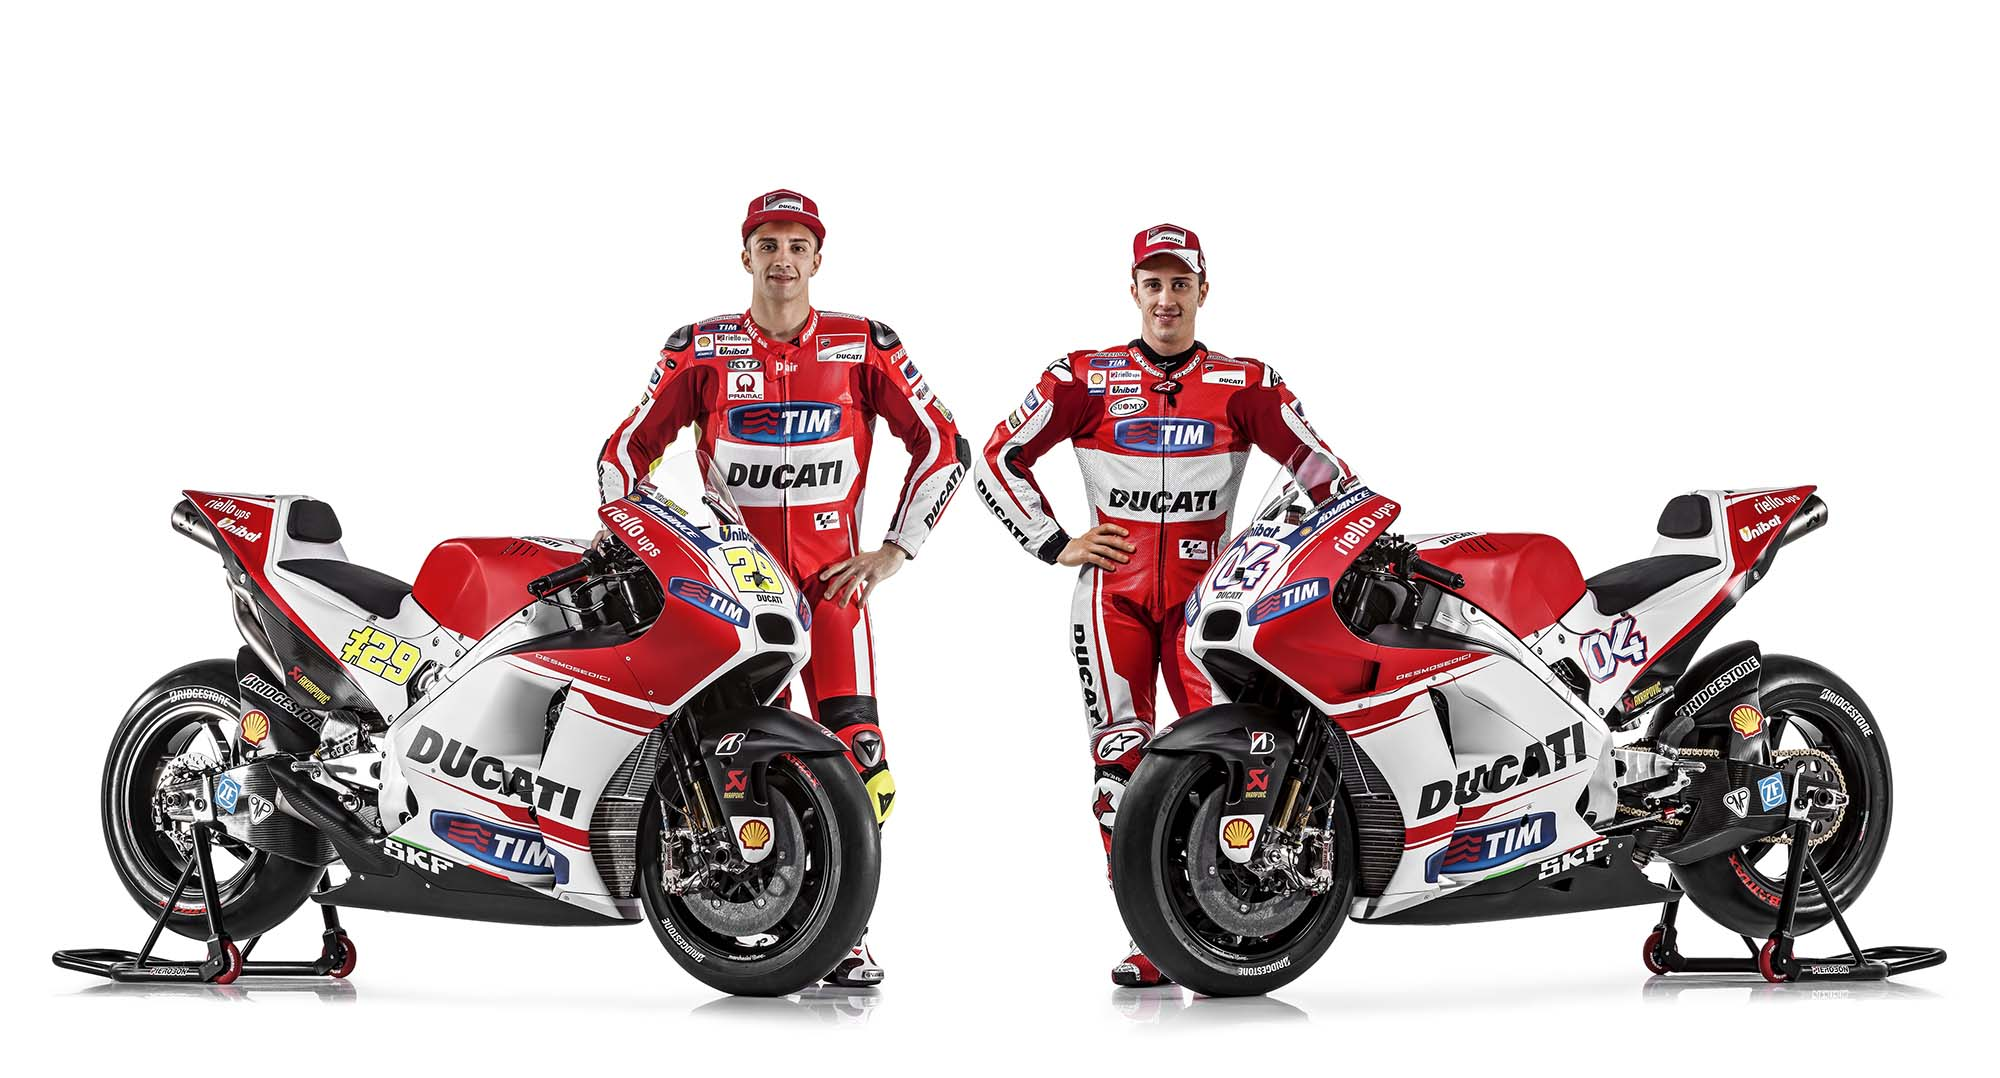 MotoGP Concession Rules Subject to Change Again, Ducati May Lose Privileges as of 2016 ...